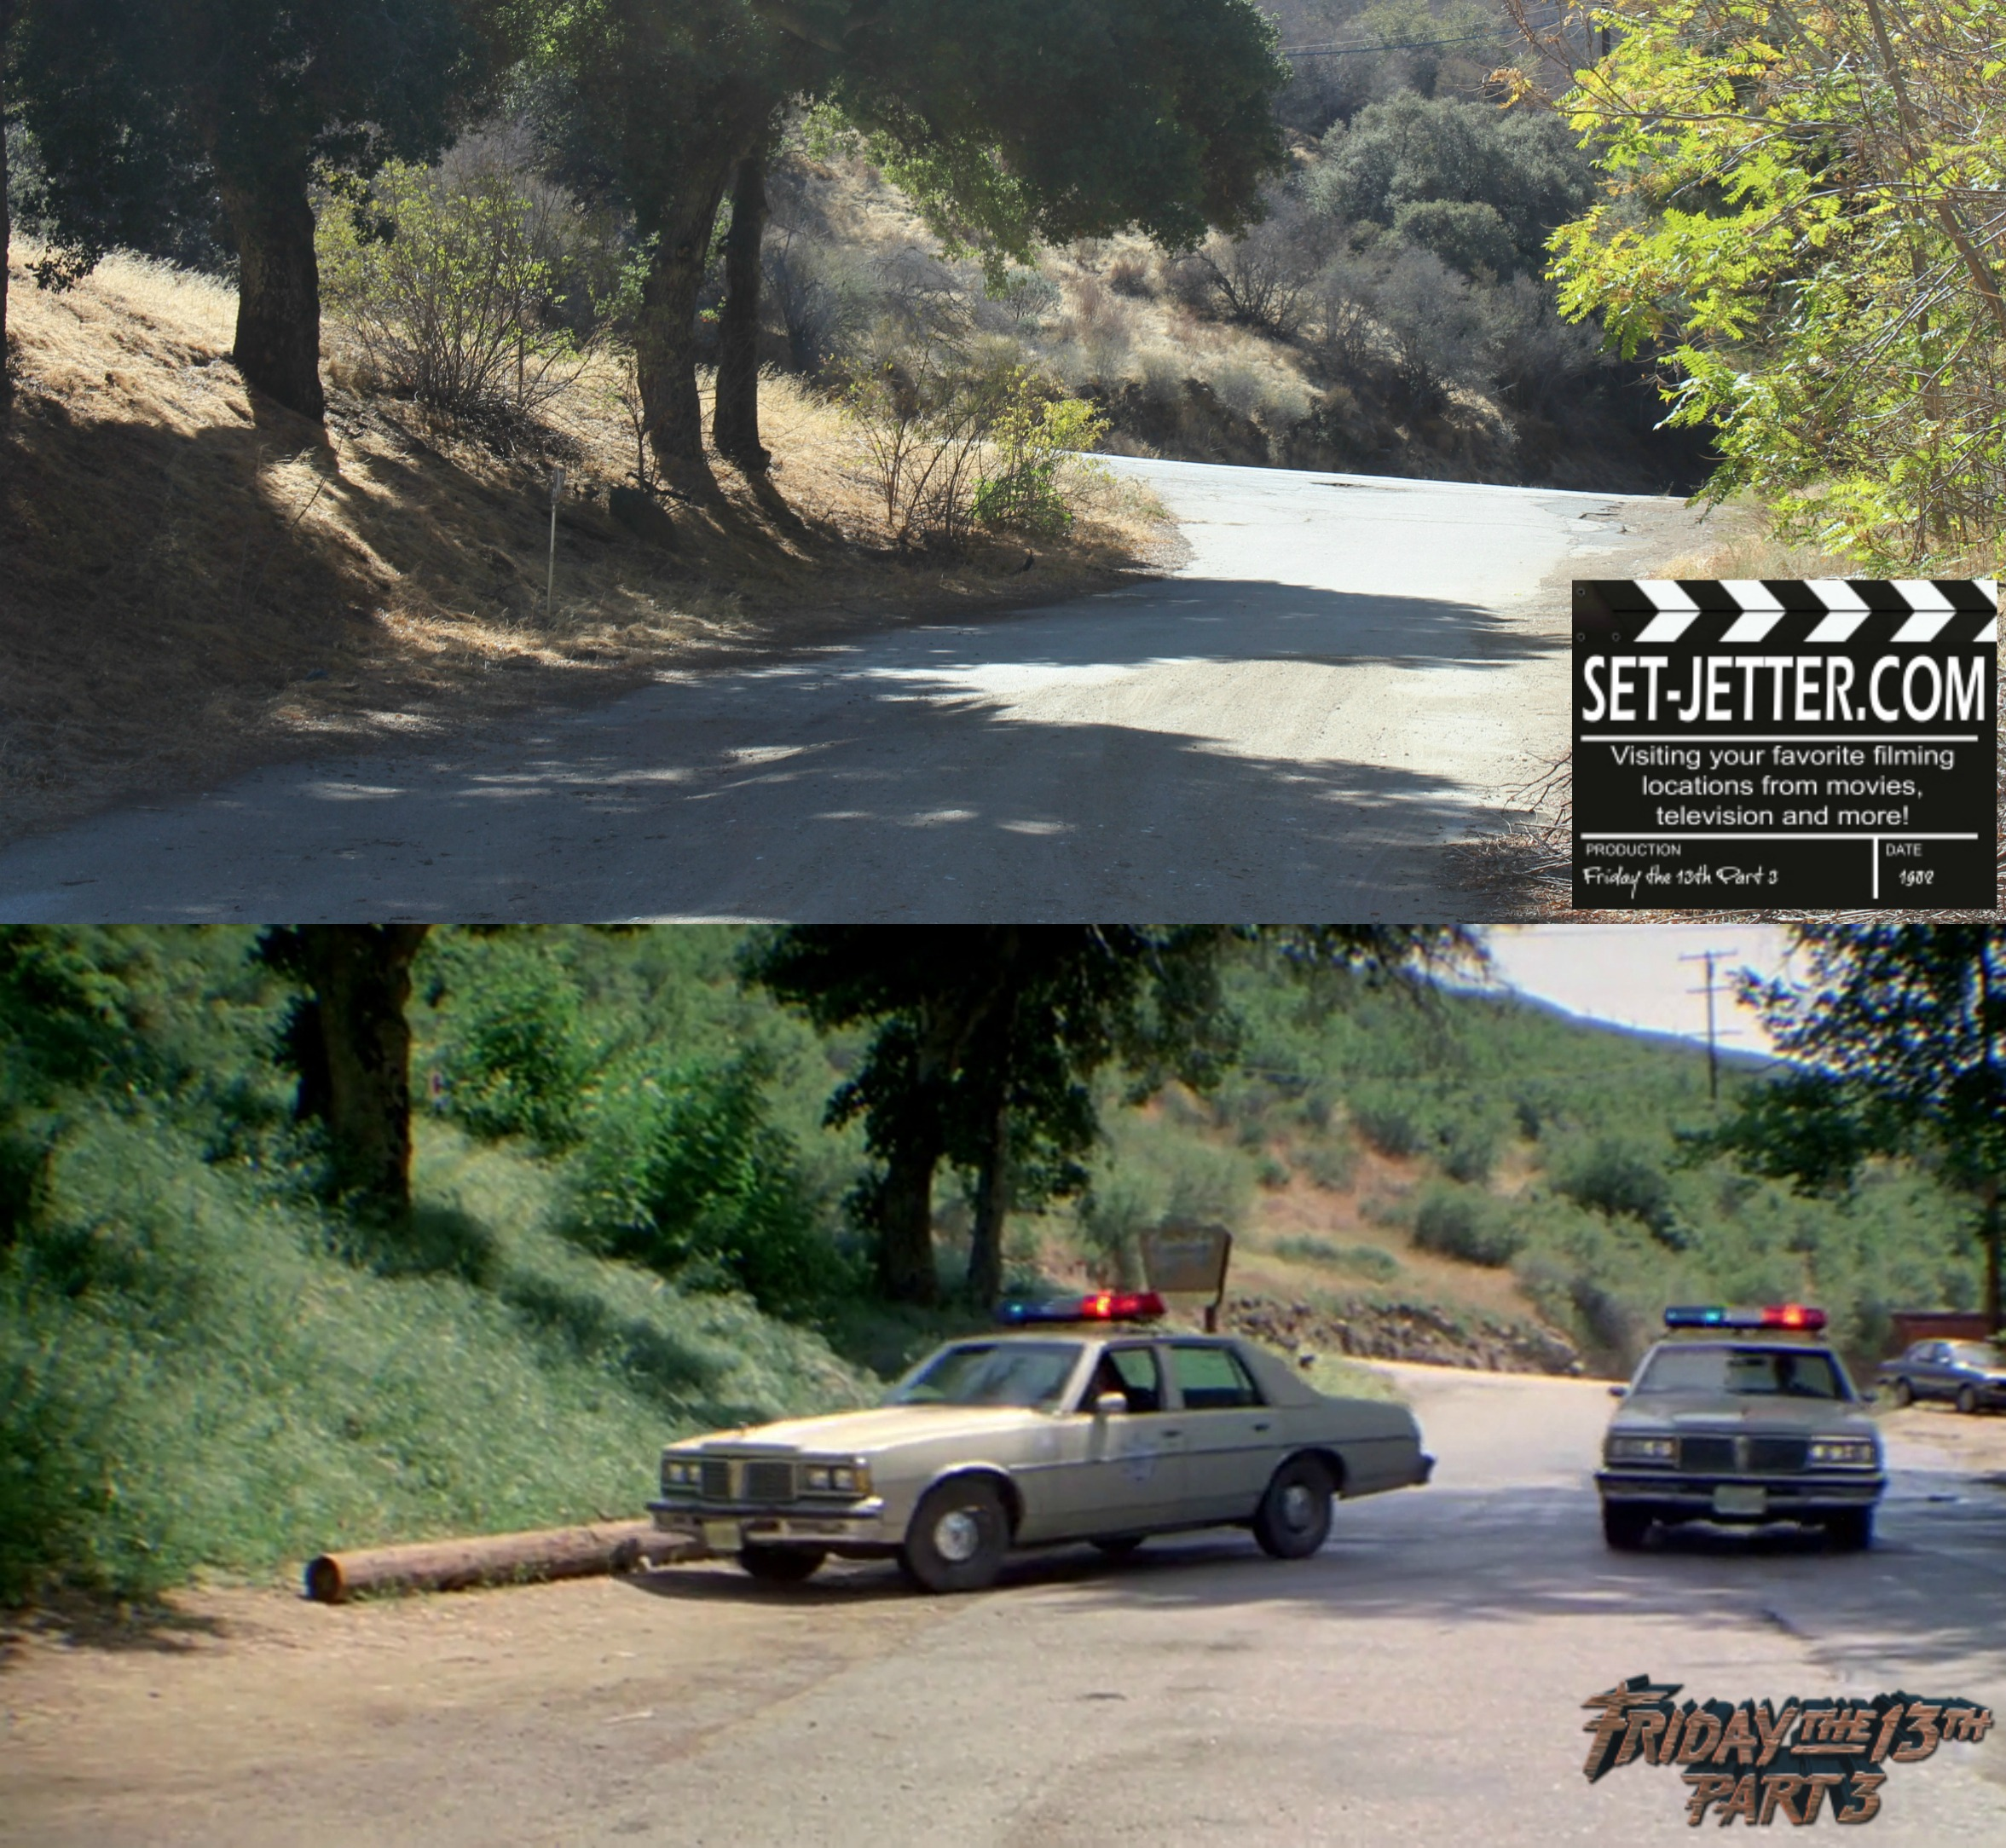 Friday the 13th Part 3 comparison 214.jpg